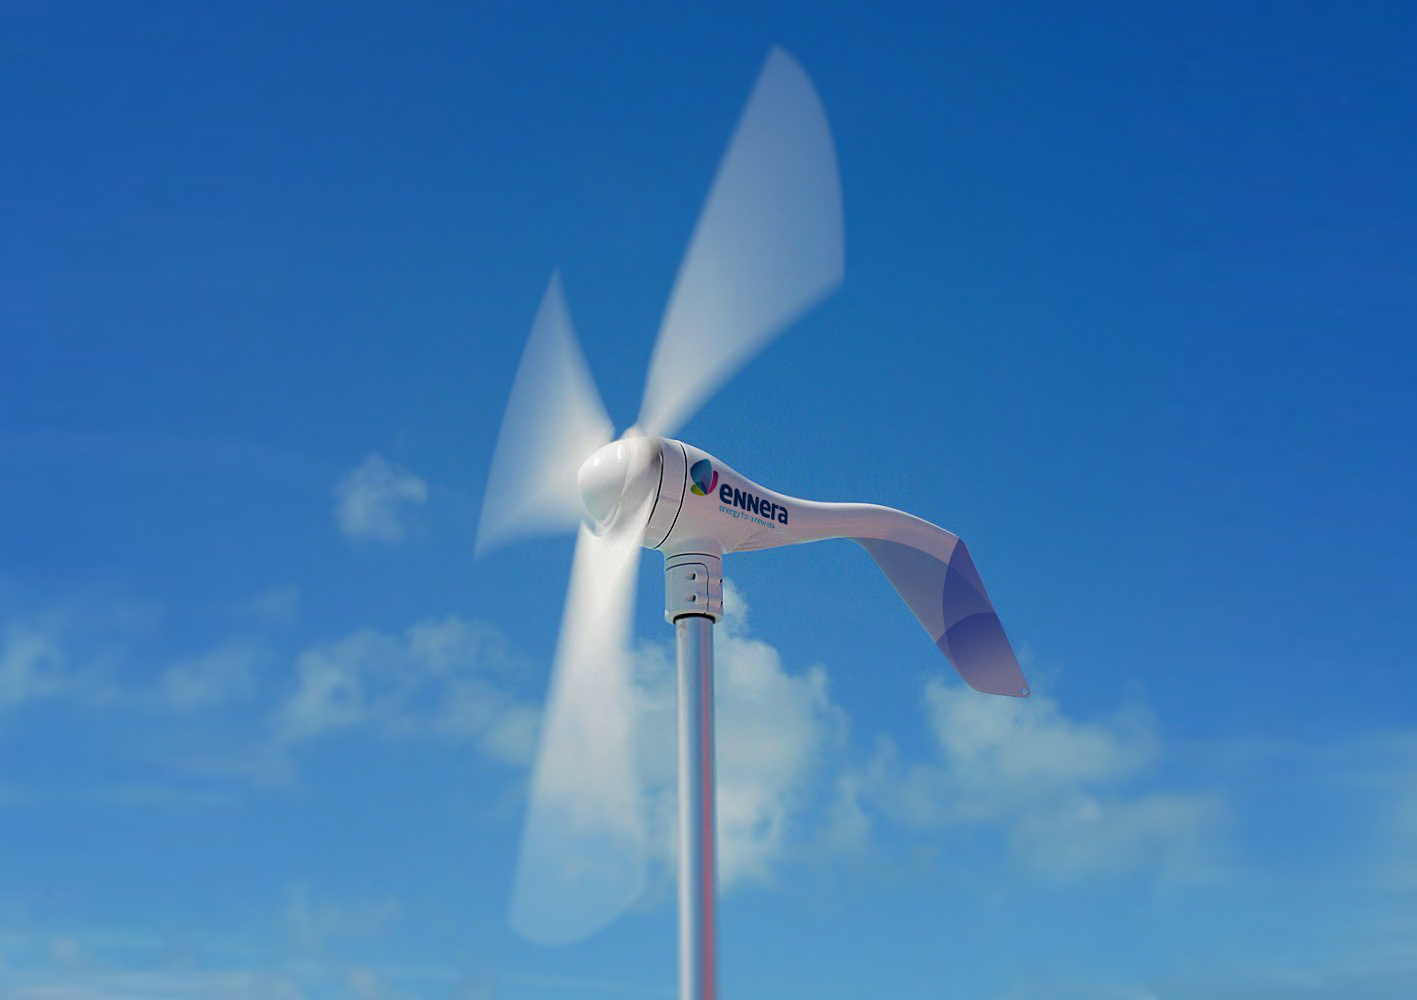 The brand will see itself applied to a number of products - From solar installations to wind turbines.